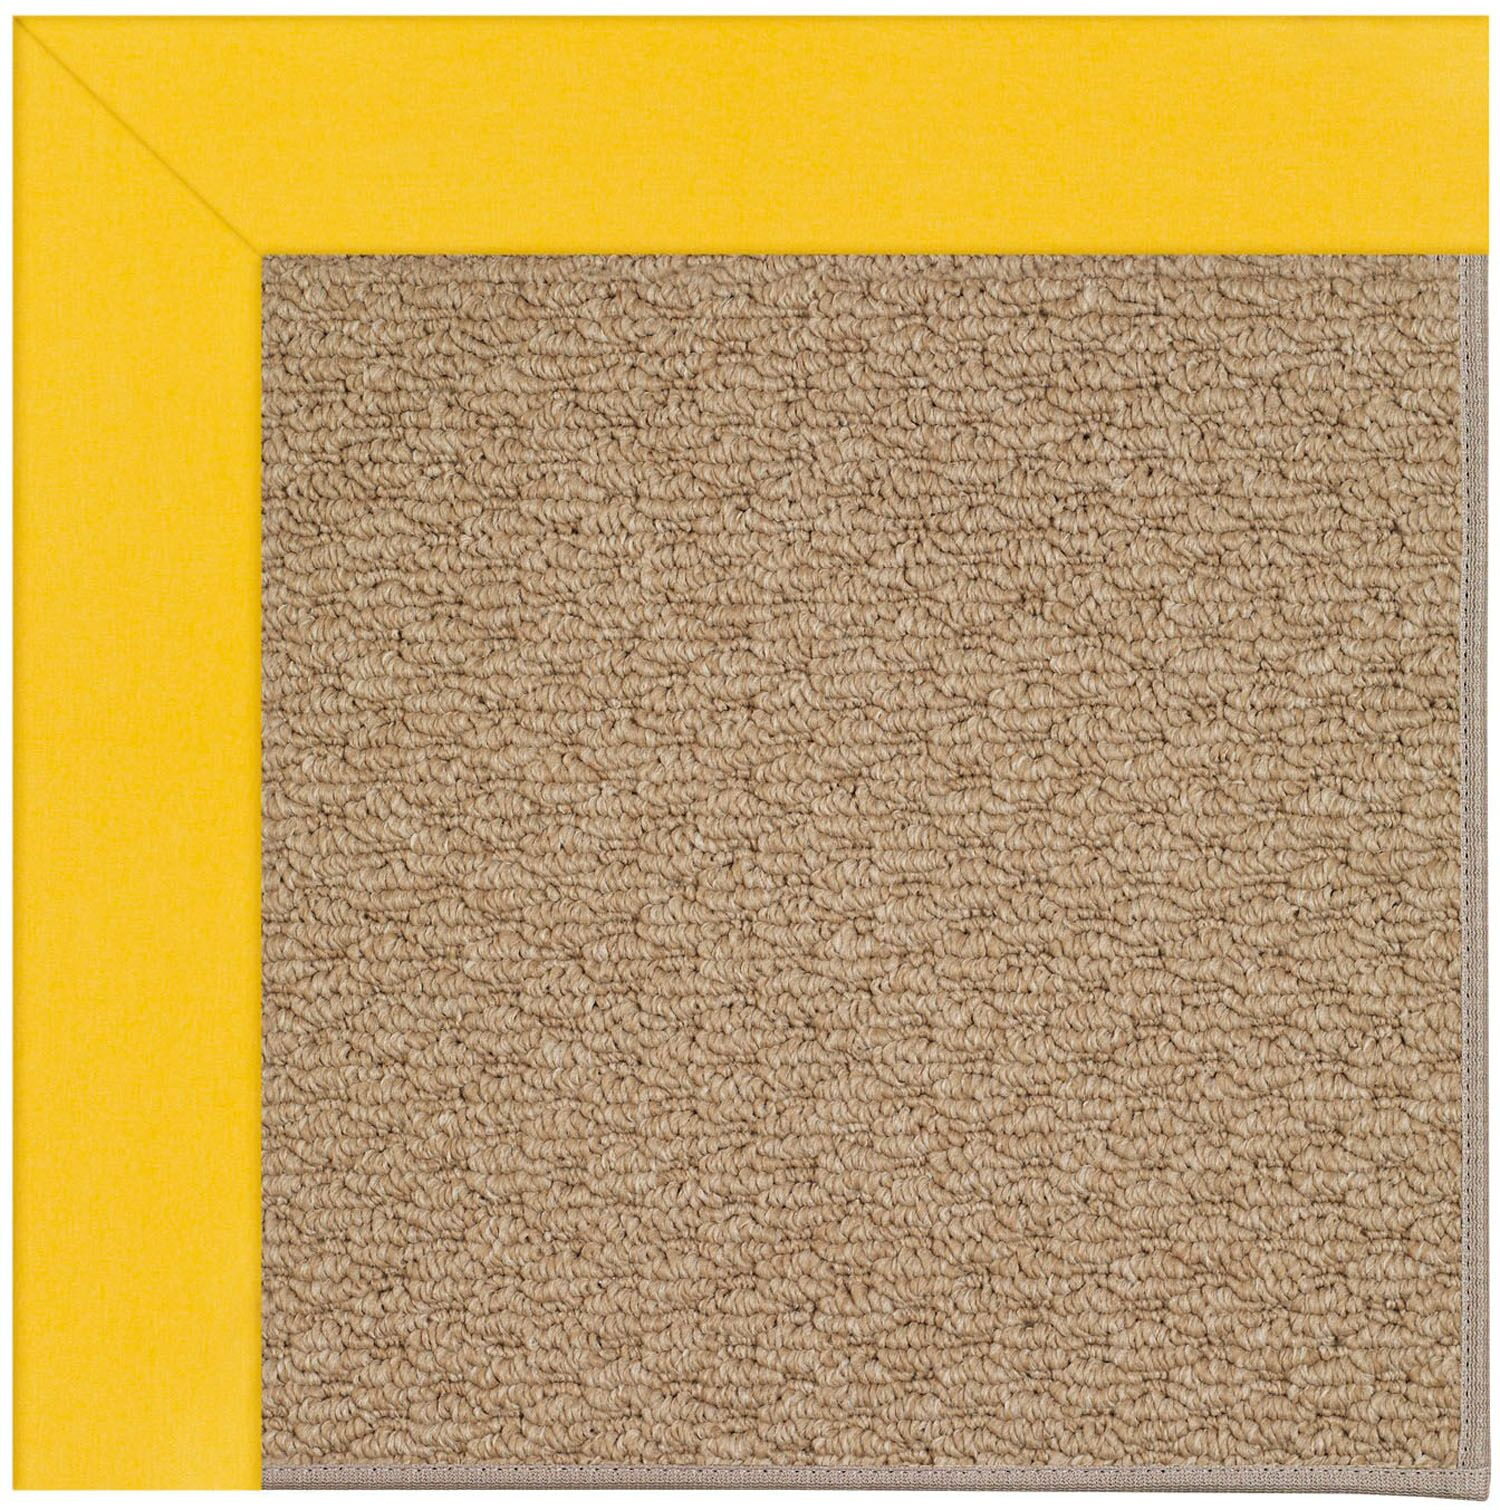 Lisle Machine Tufted Summertime Yellow/Brown Indoor/Outdoor Area Rug Rug Size: Square 4'